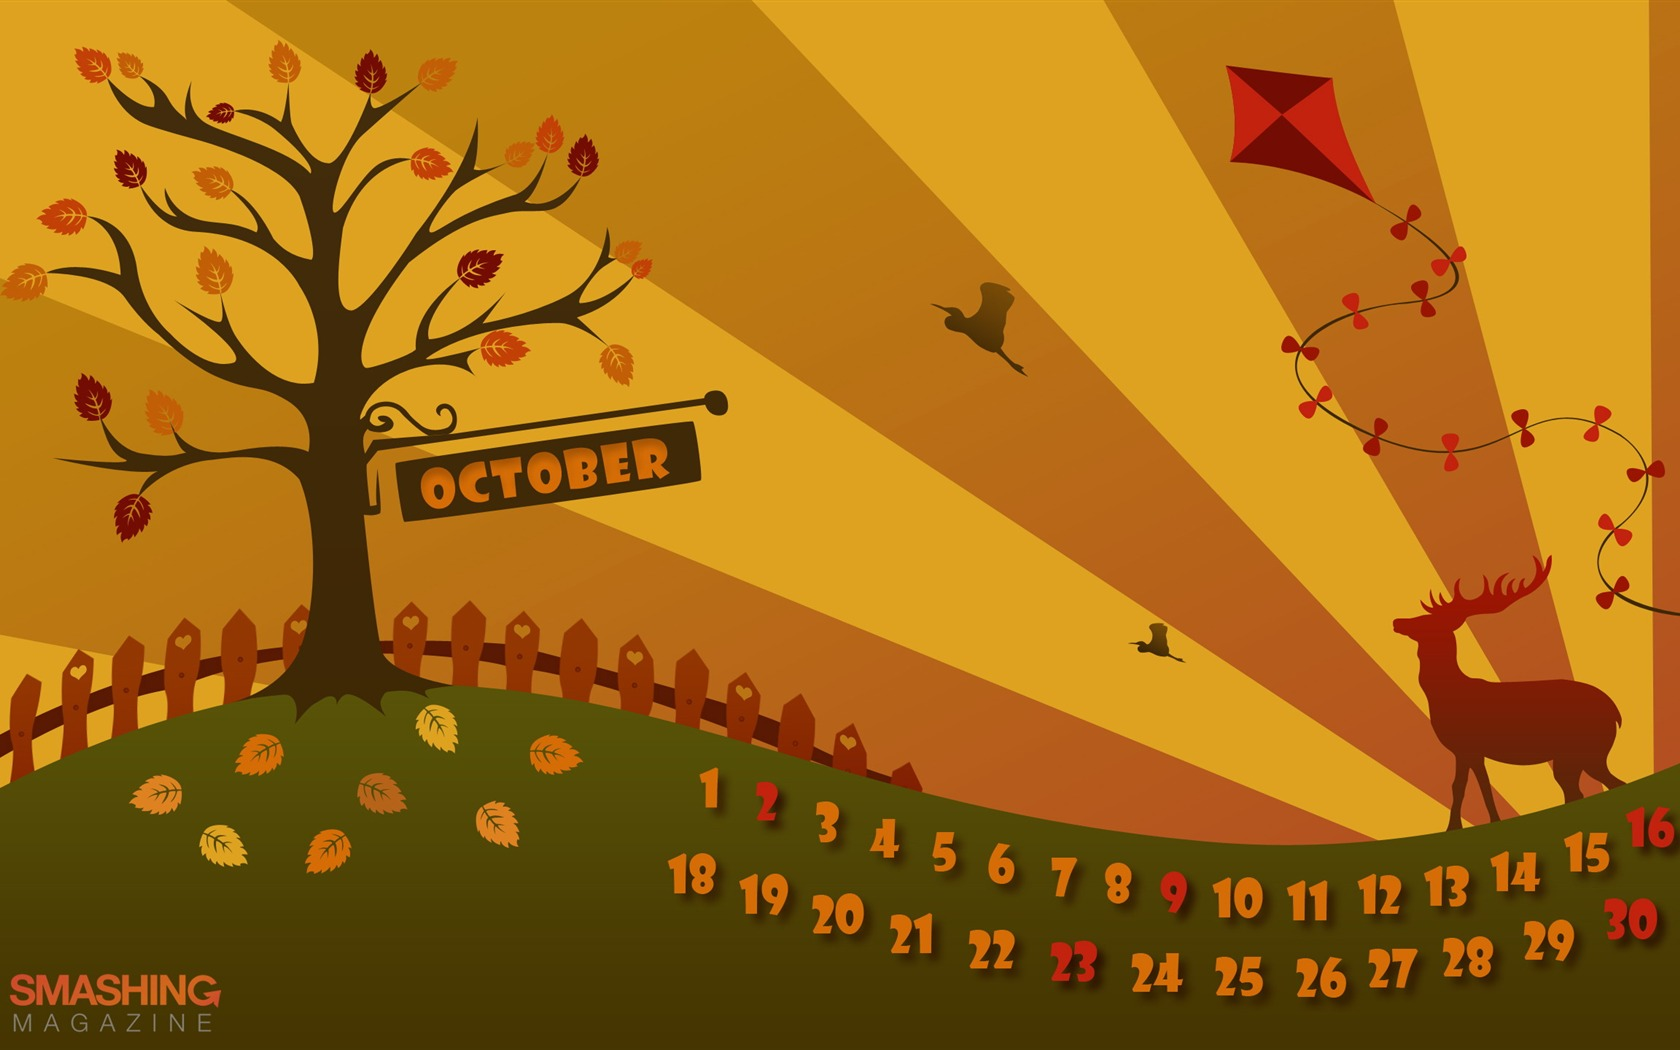 Pretty Autumn October 2011 Desktop Calendar Wallpaper Preview 10wallpaper Com